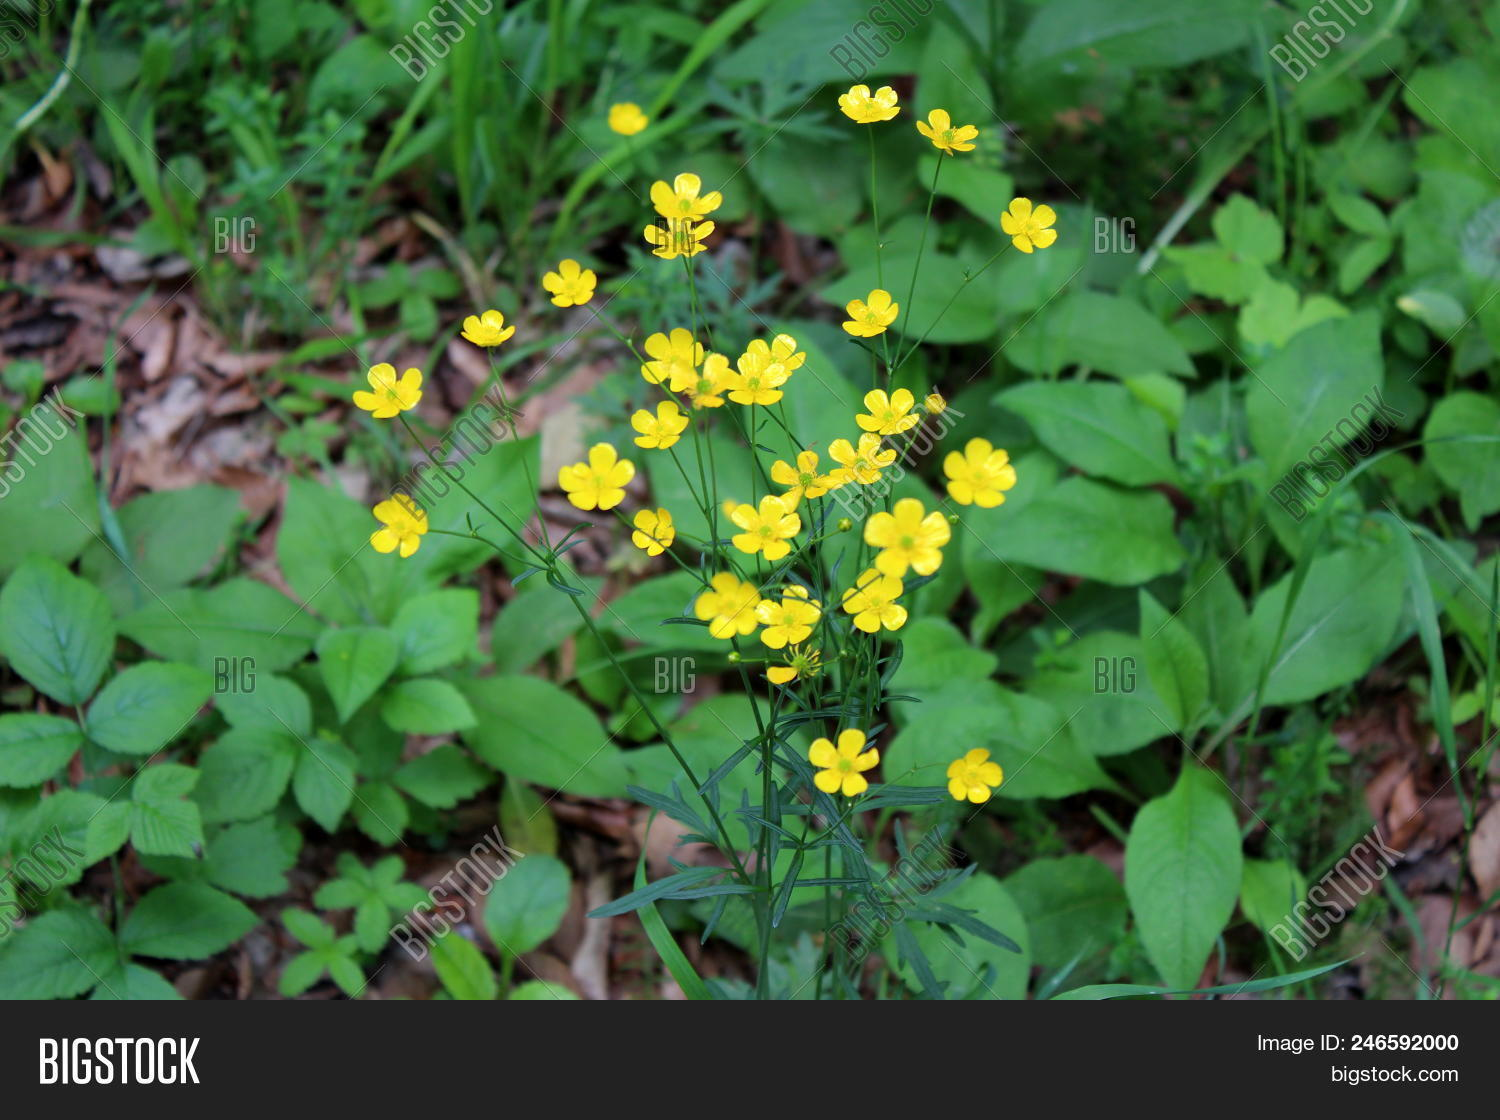 Common Buttercup Image Photo Free Trial Bigstock